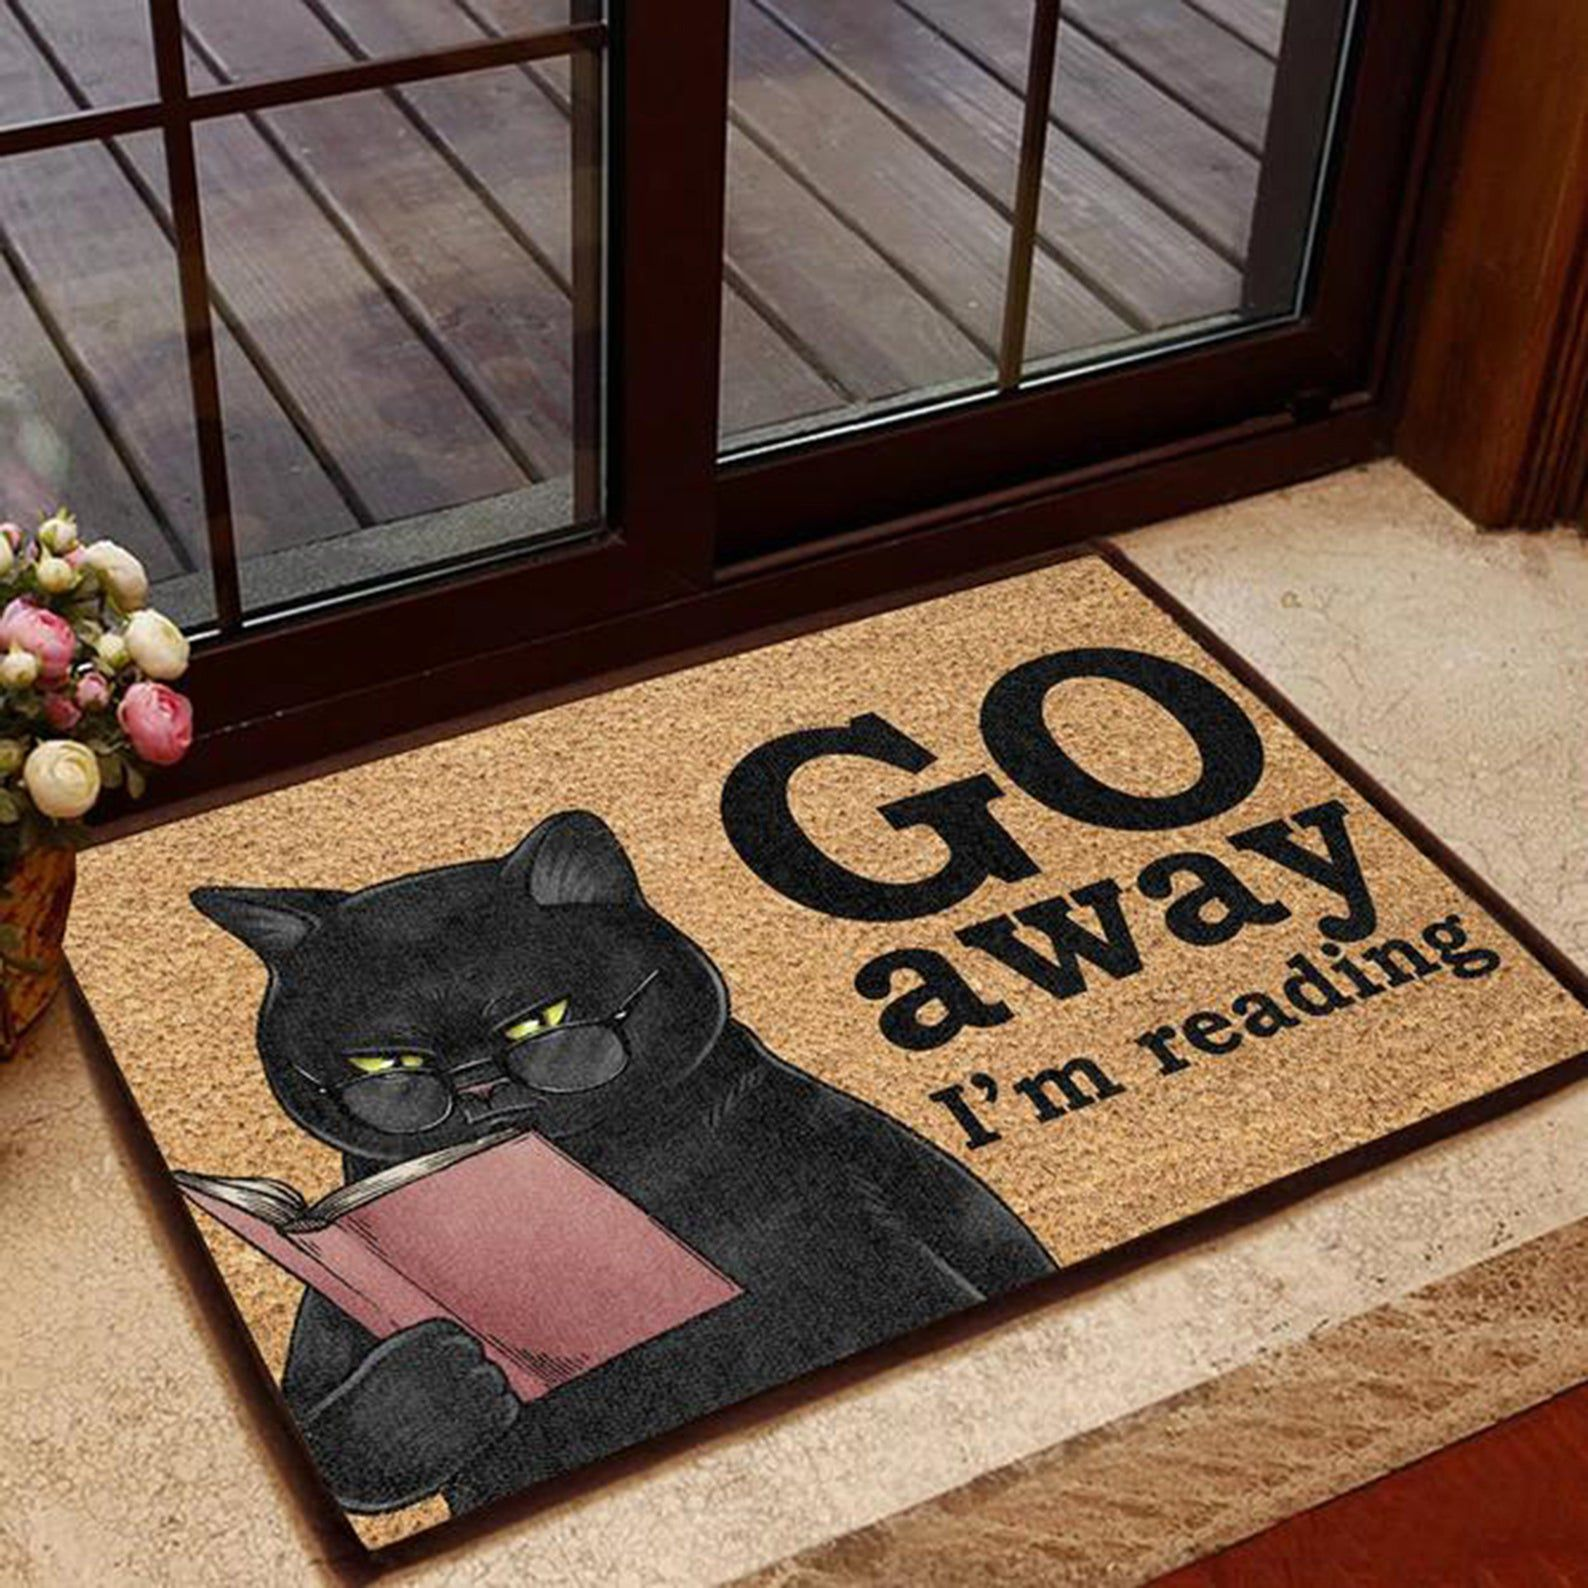 """Image of a black cat reading a book with the text """"Go away I'm reading"""" on a brown doormat."""